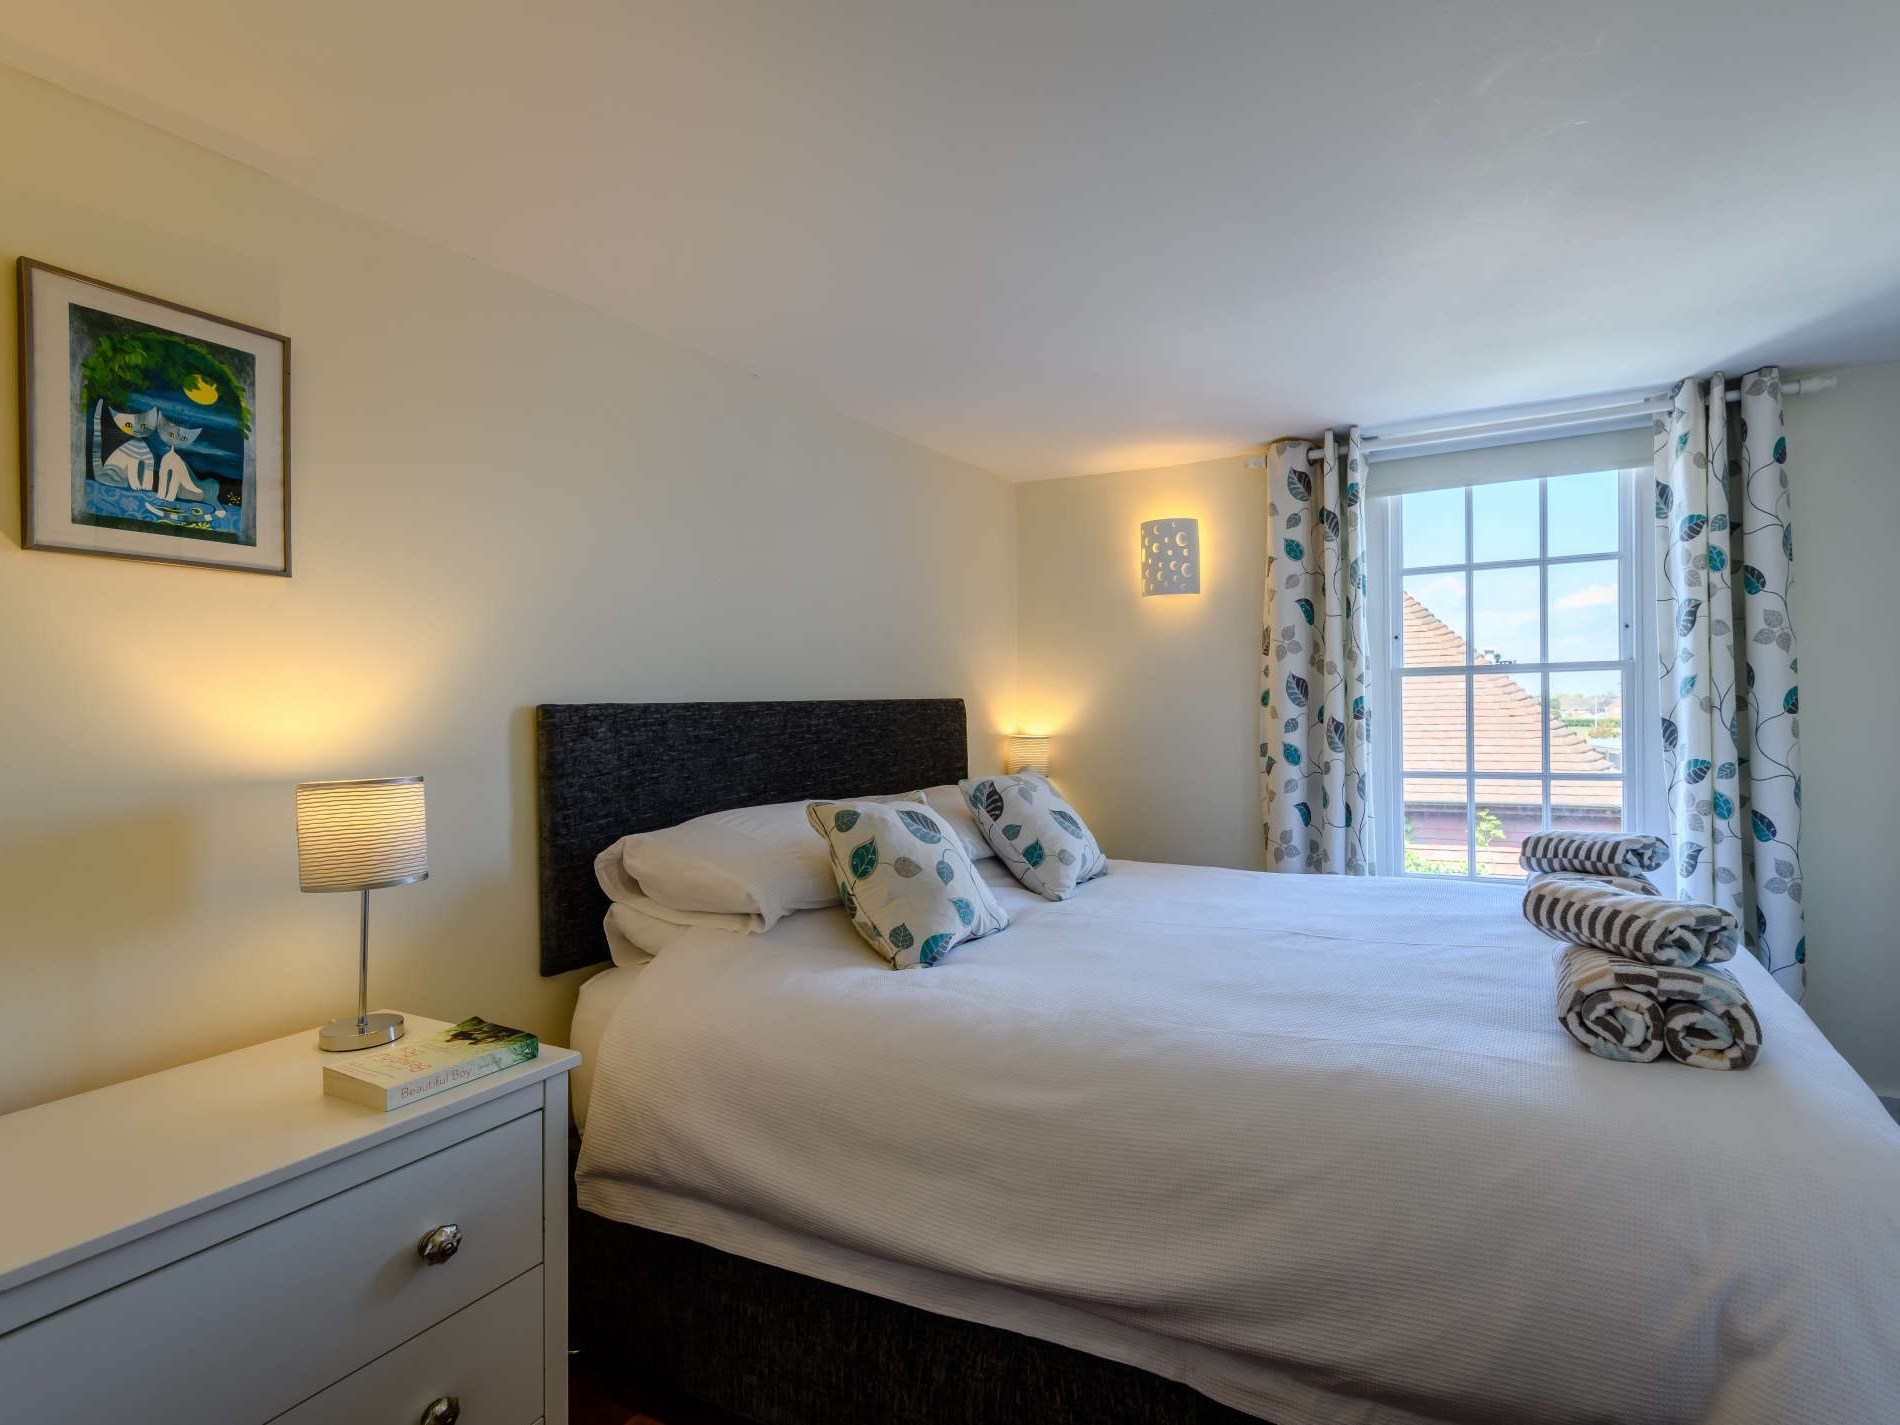 2 Bedroom Apartment in Hampshire, South of England